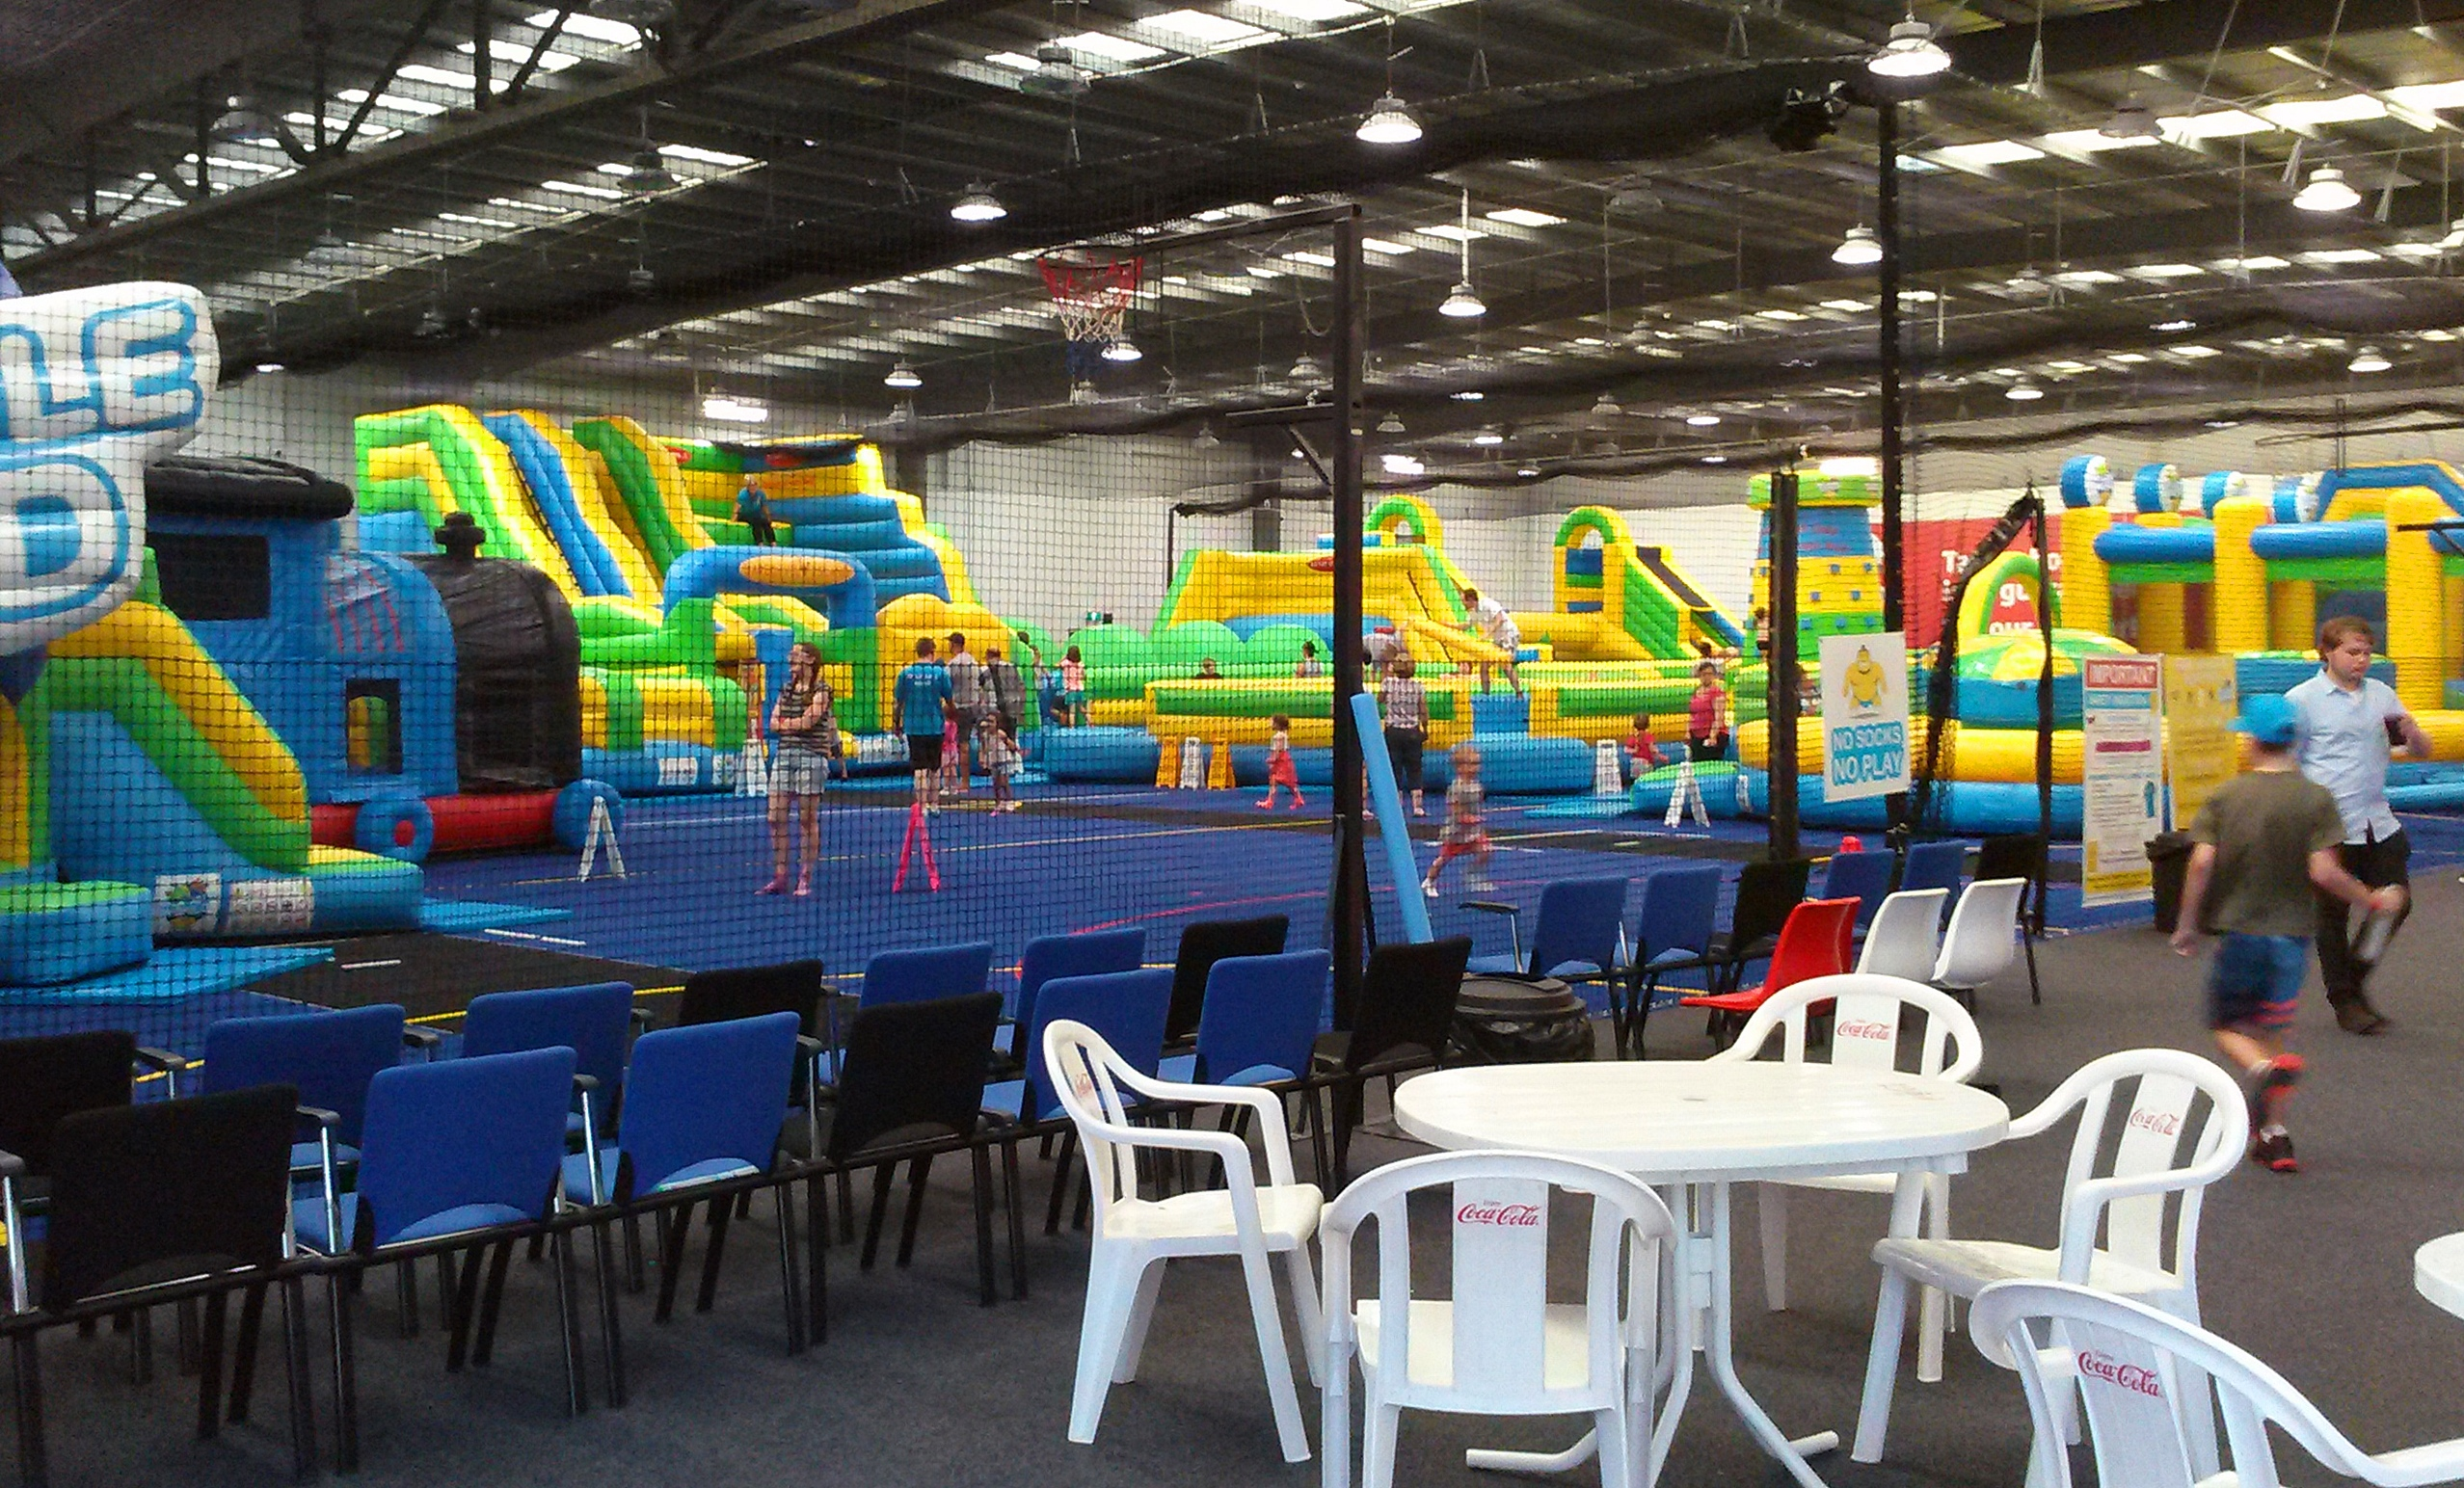 Childrens Birthday Party Venues In Canberra Part Canberra - Childrens birthday party ideas canberra